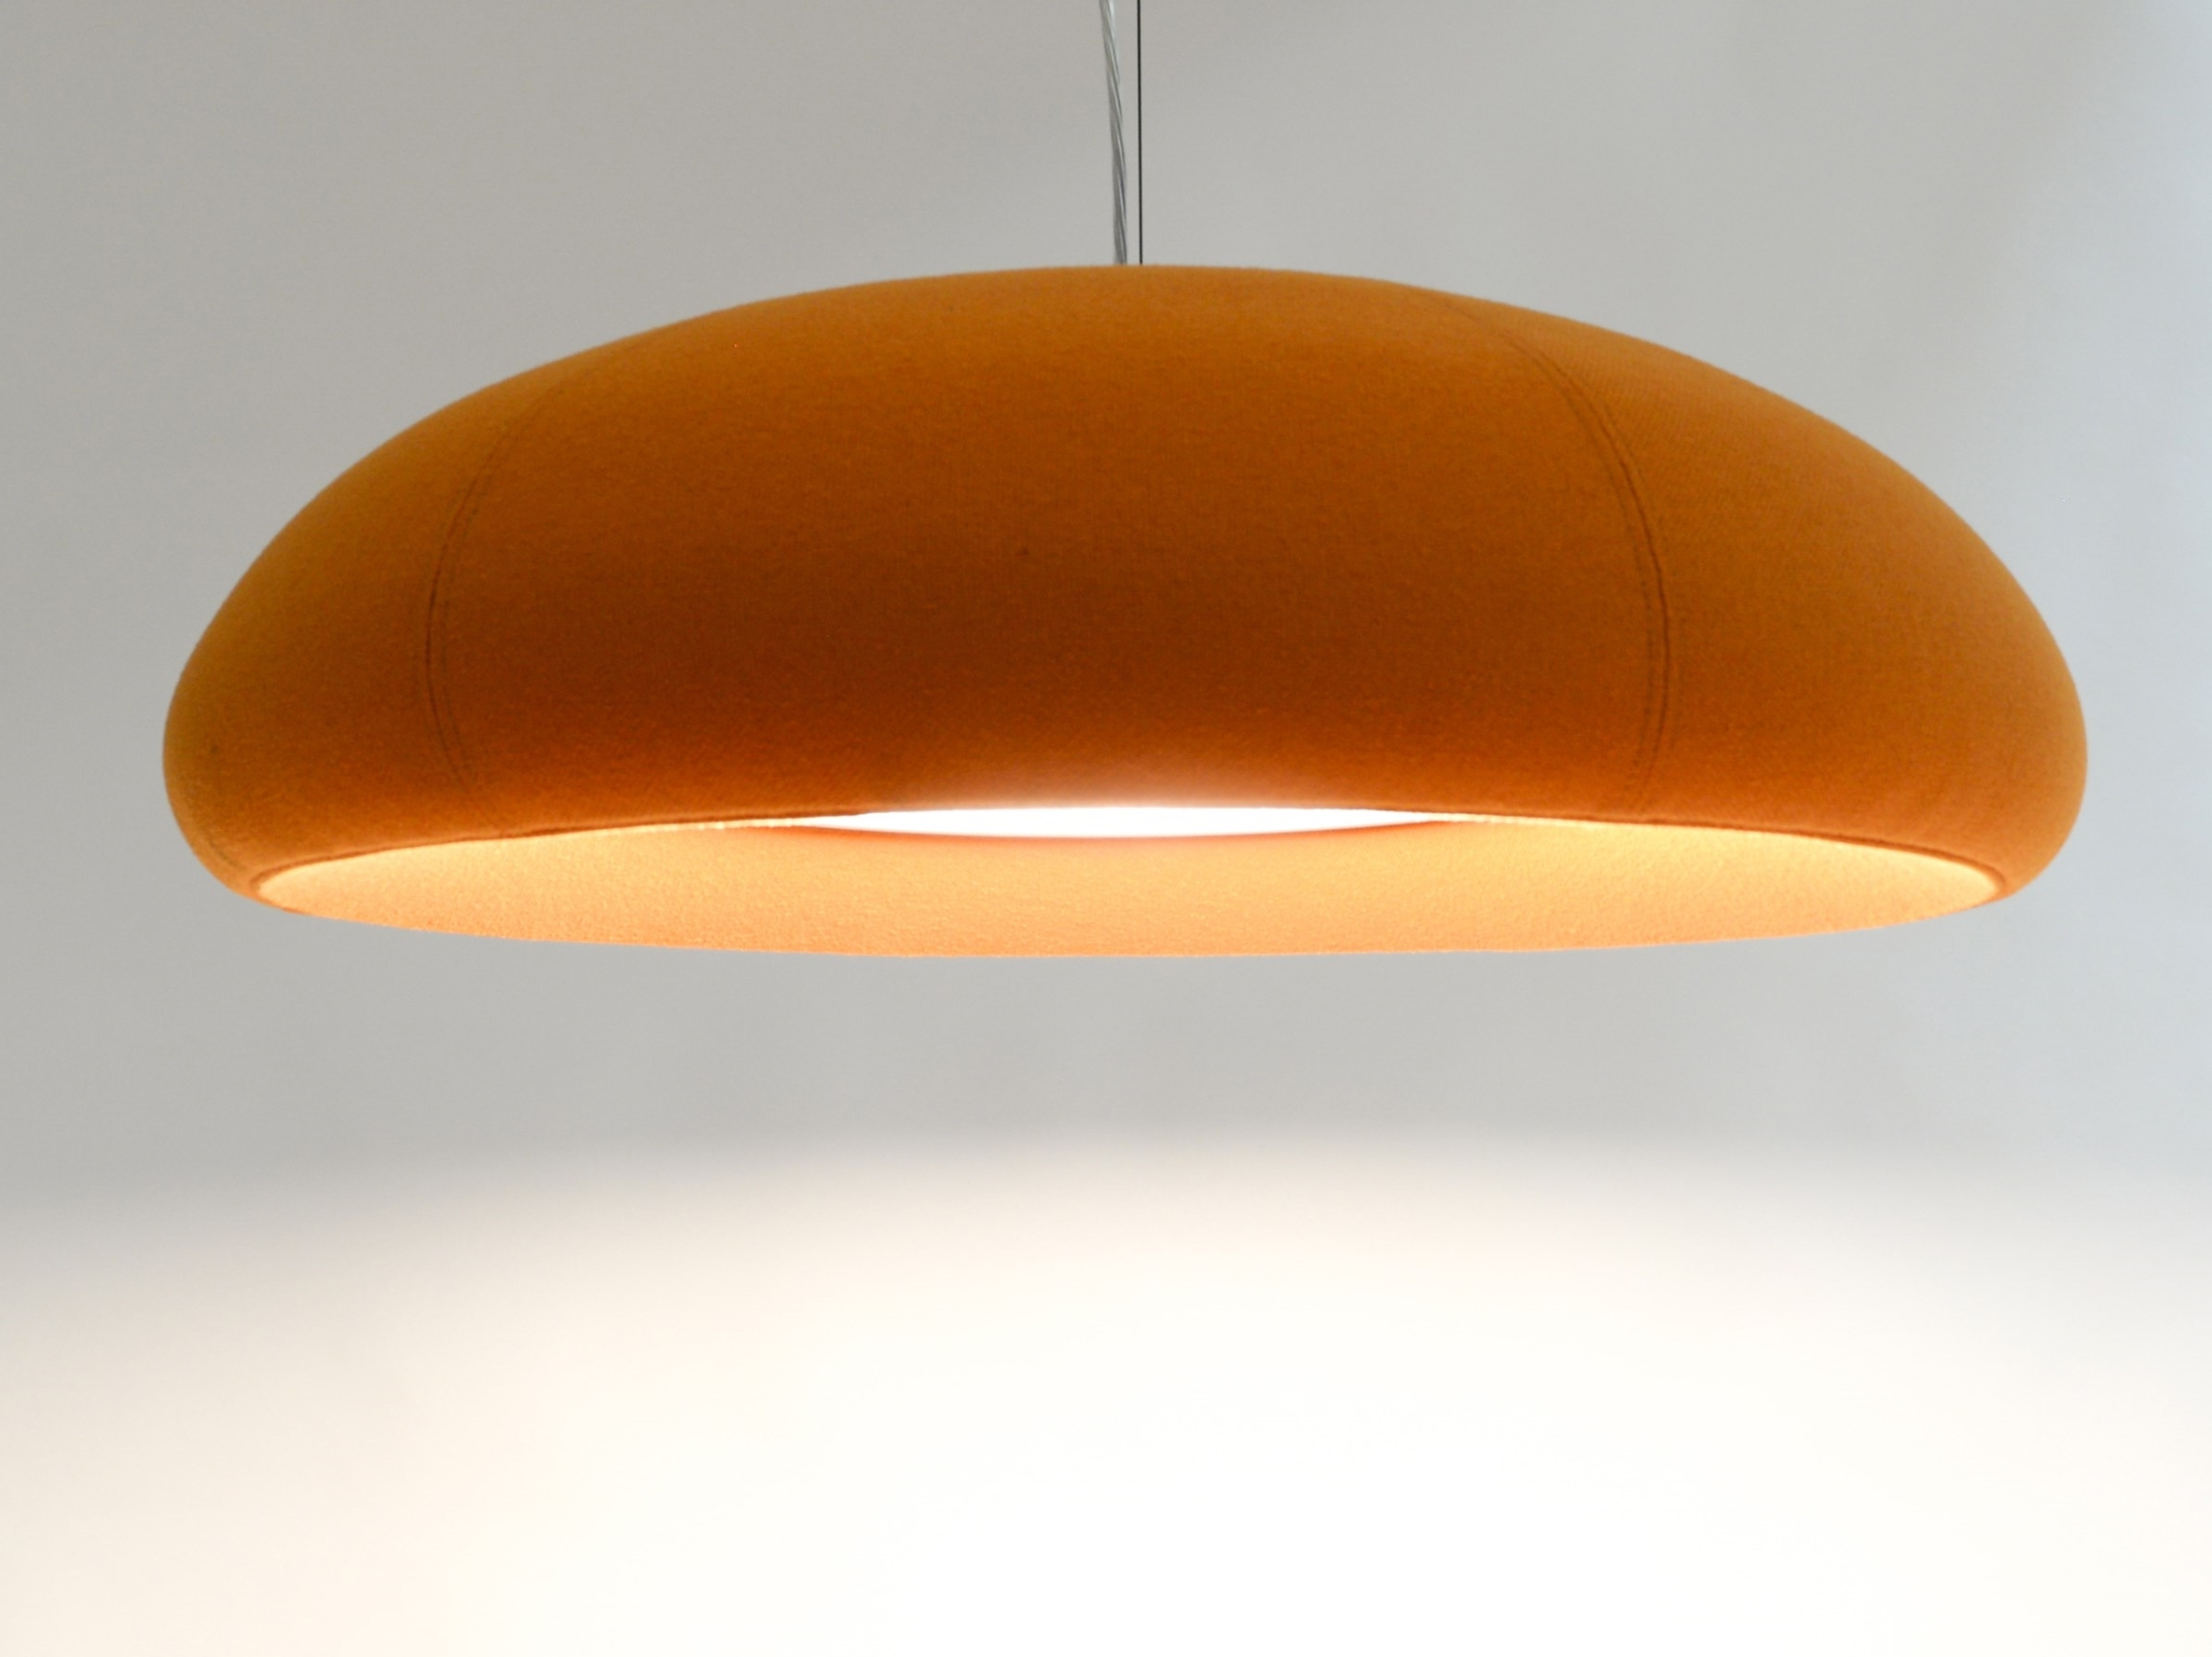 Buzzi & Buzzi Lighting buzzidome by buzzispace | stylepark